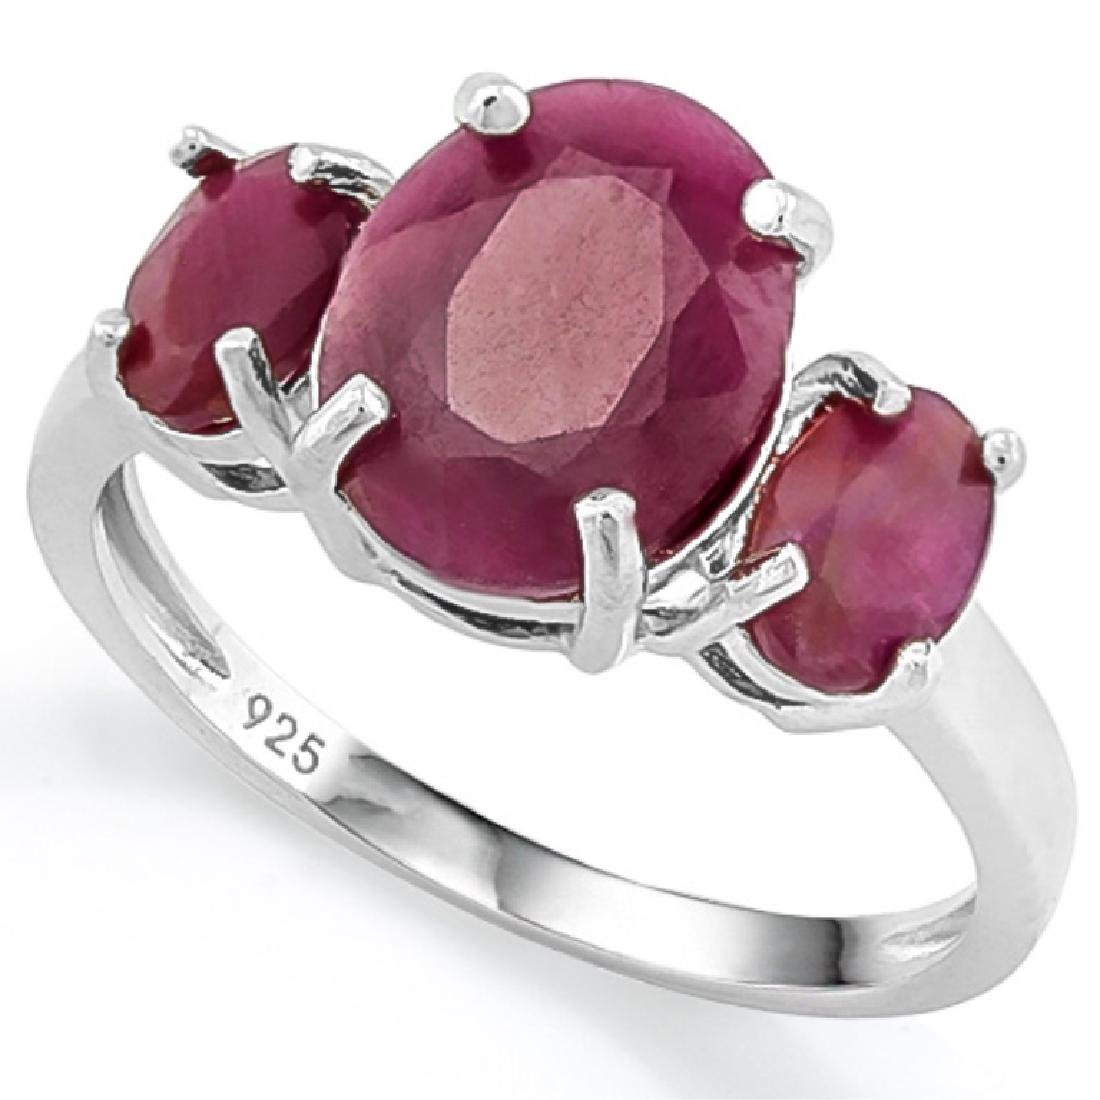 SUPERB 5CT RUBY PAST,PRESENT,FUTURE STERLING RING